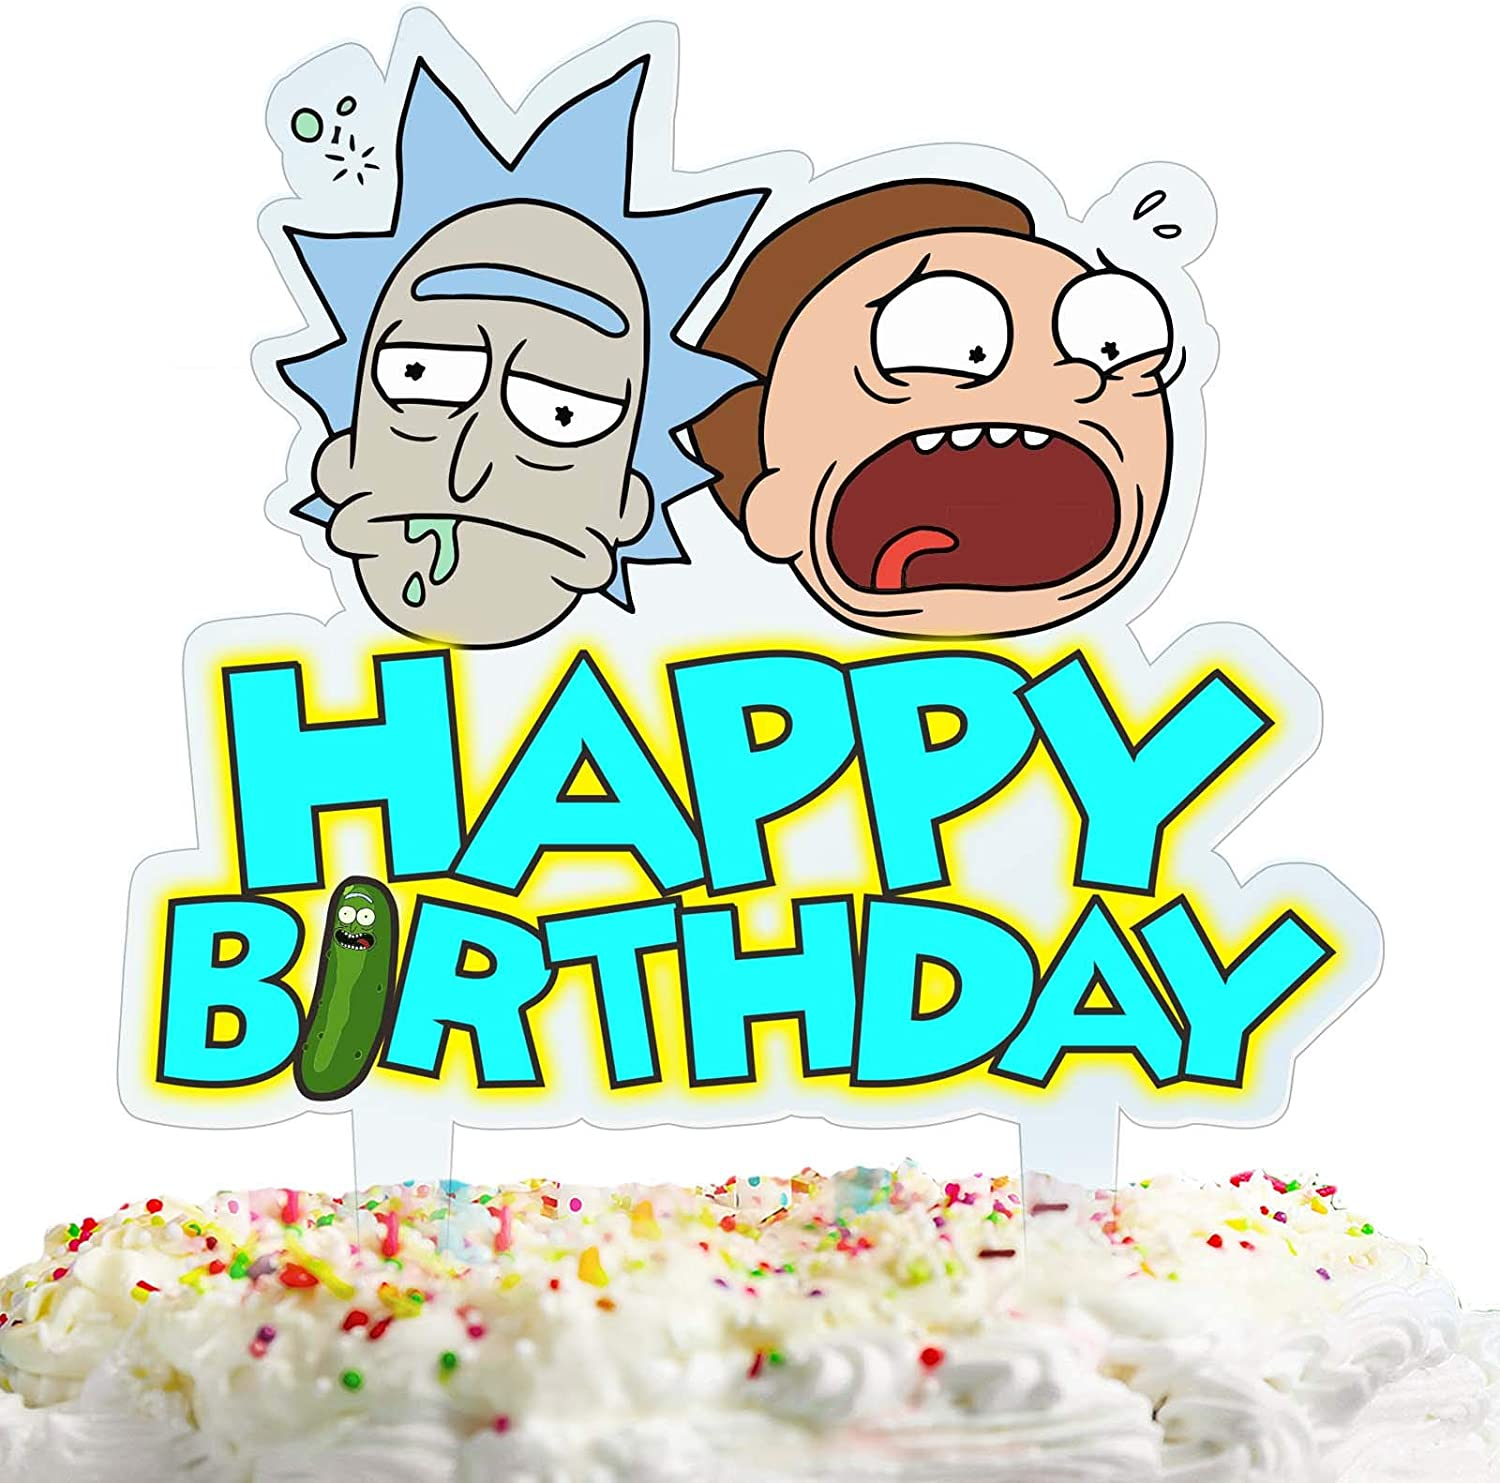 Rick and Morty Cake Topper Happy Birthday Cartoon Theme Acrylic Decor Picks for Kids Party Decorations Supplies